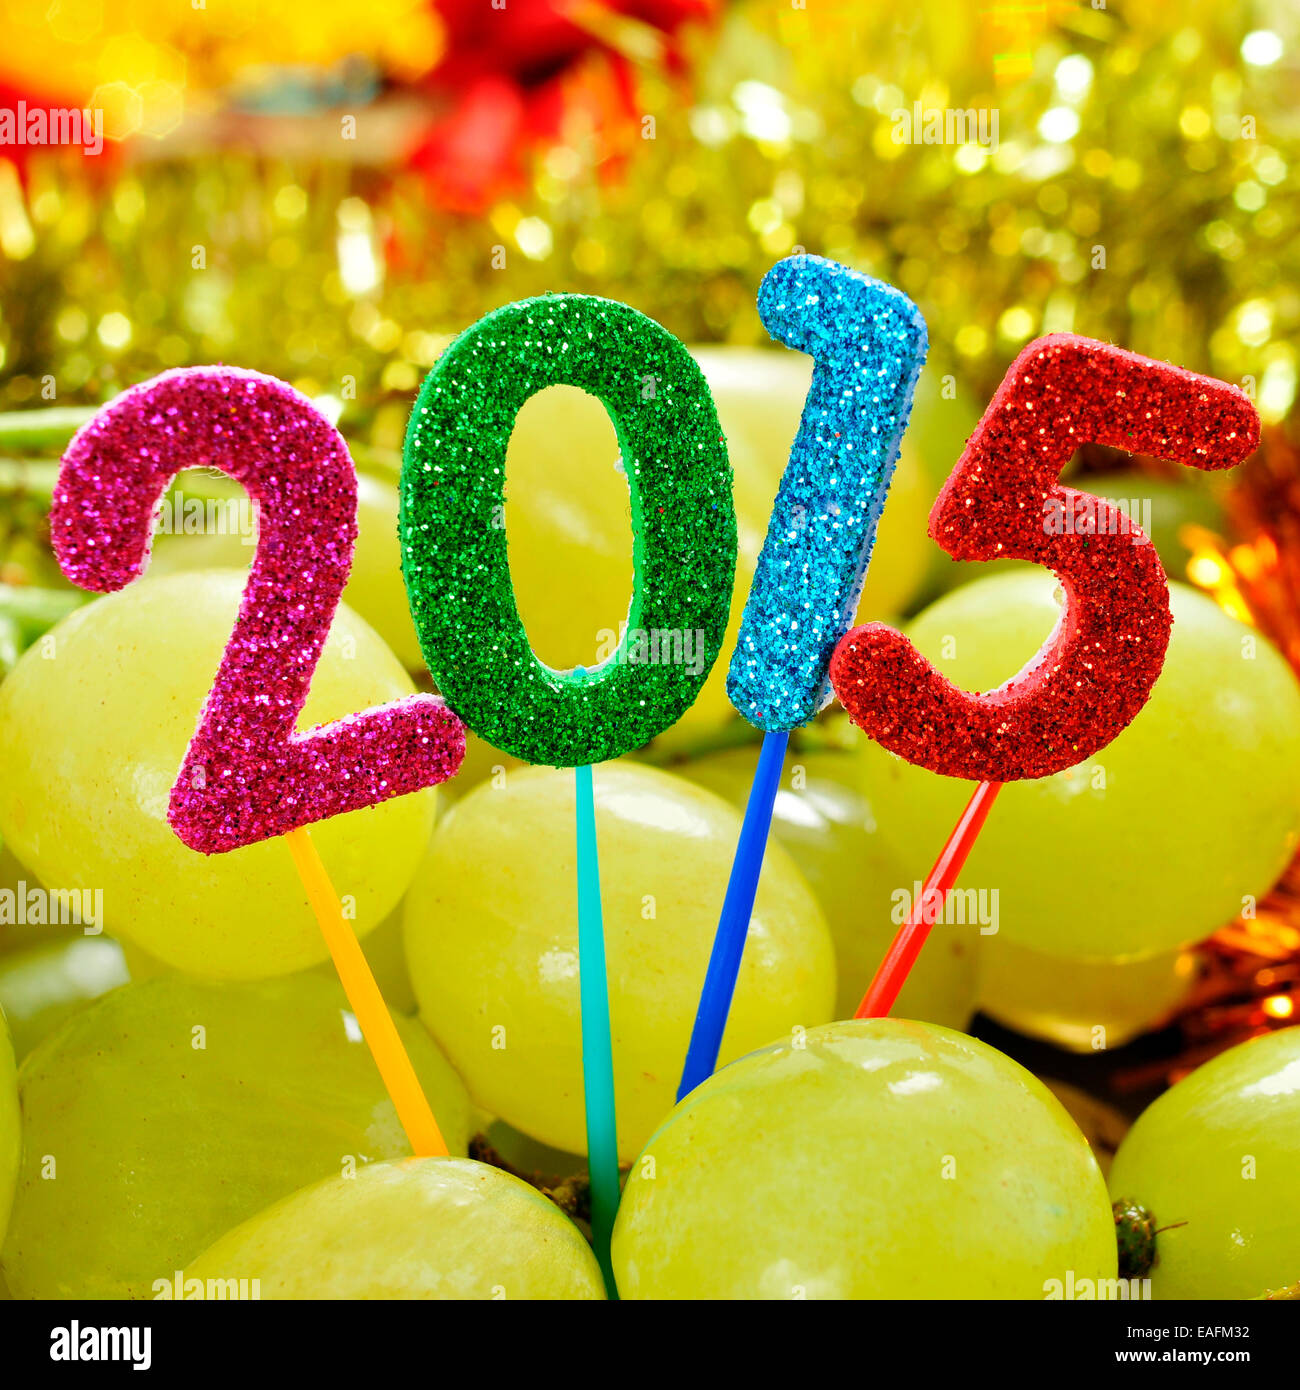 numbers of different colors forming the number 2015, as the new year, with a pile of grapes in the background - Stock Image